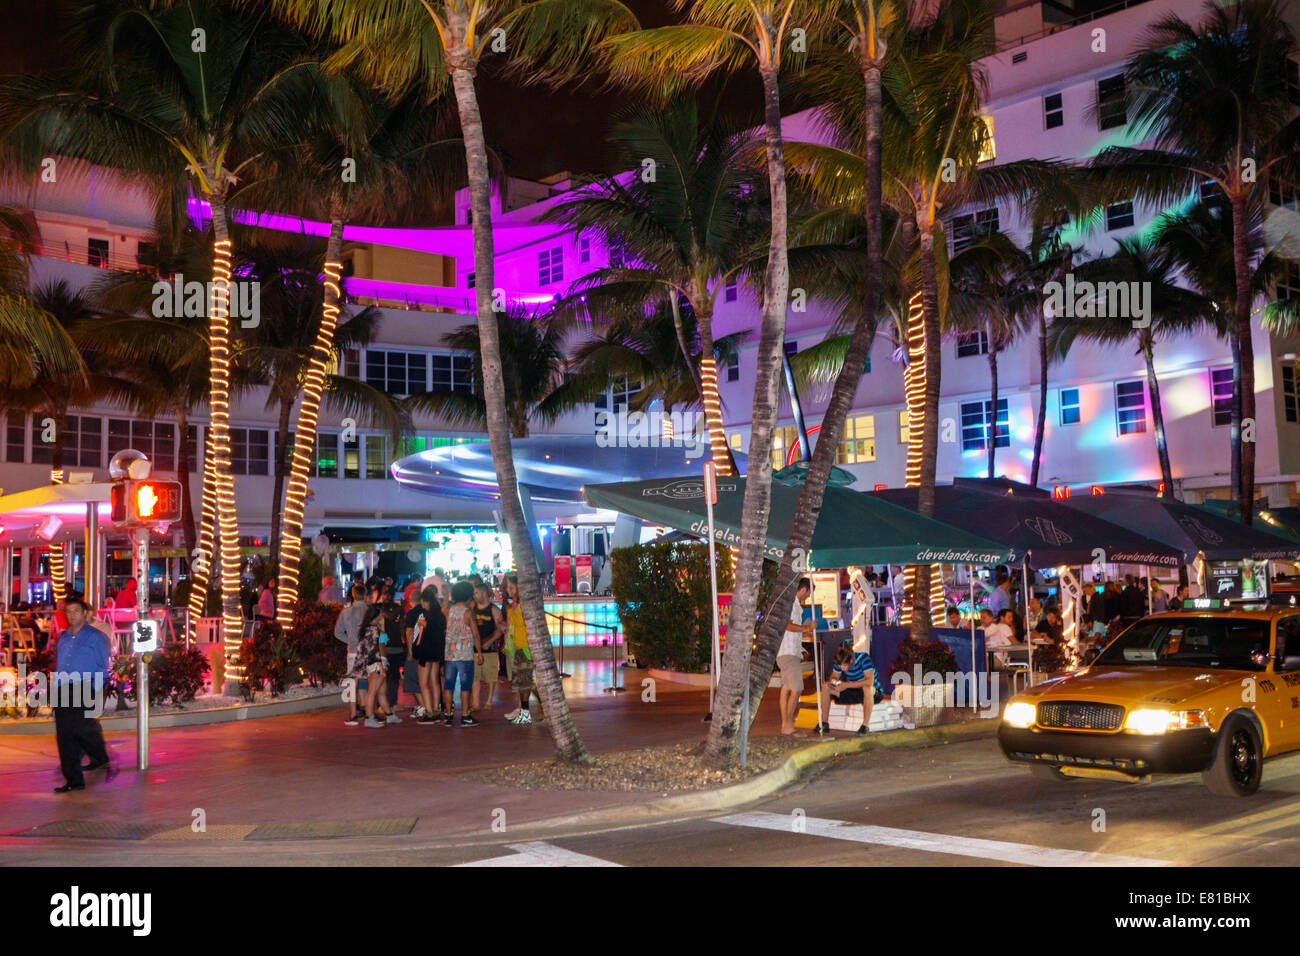 News Cafe Restaurant Miami Beach